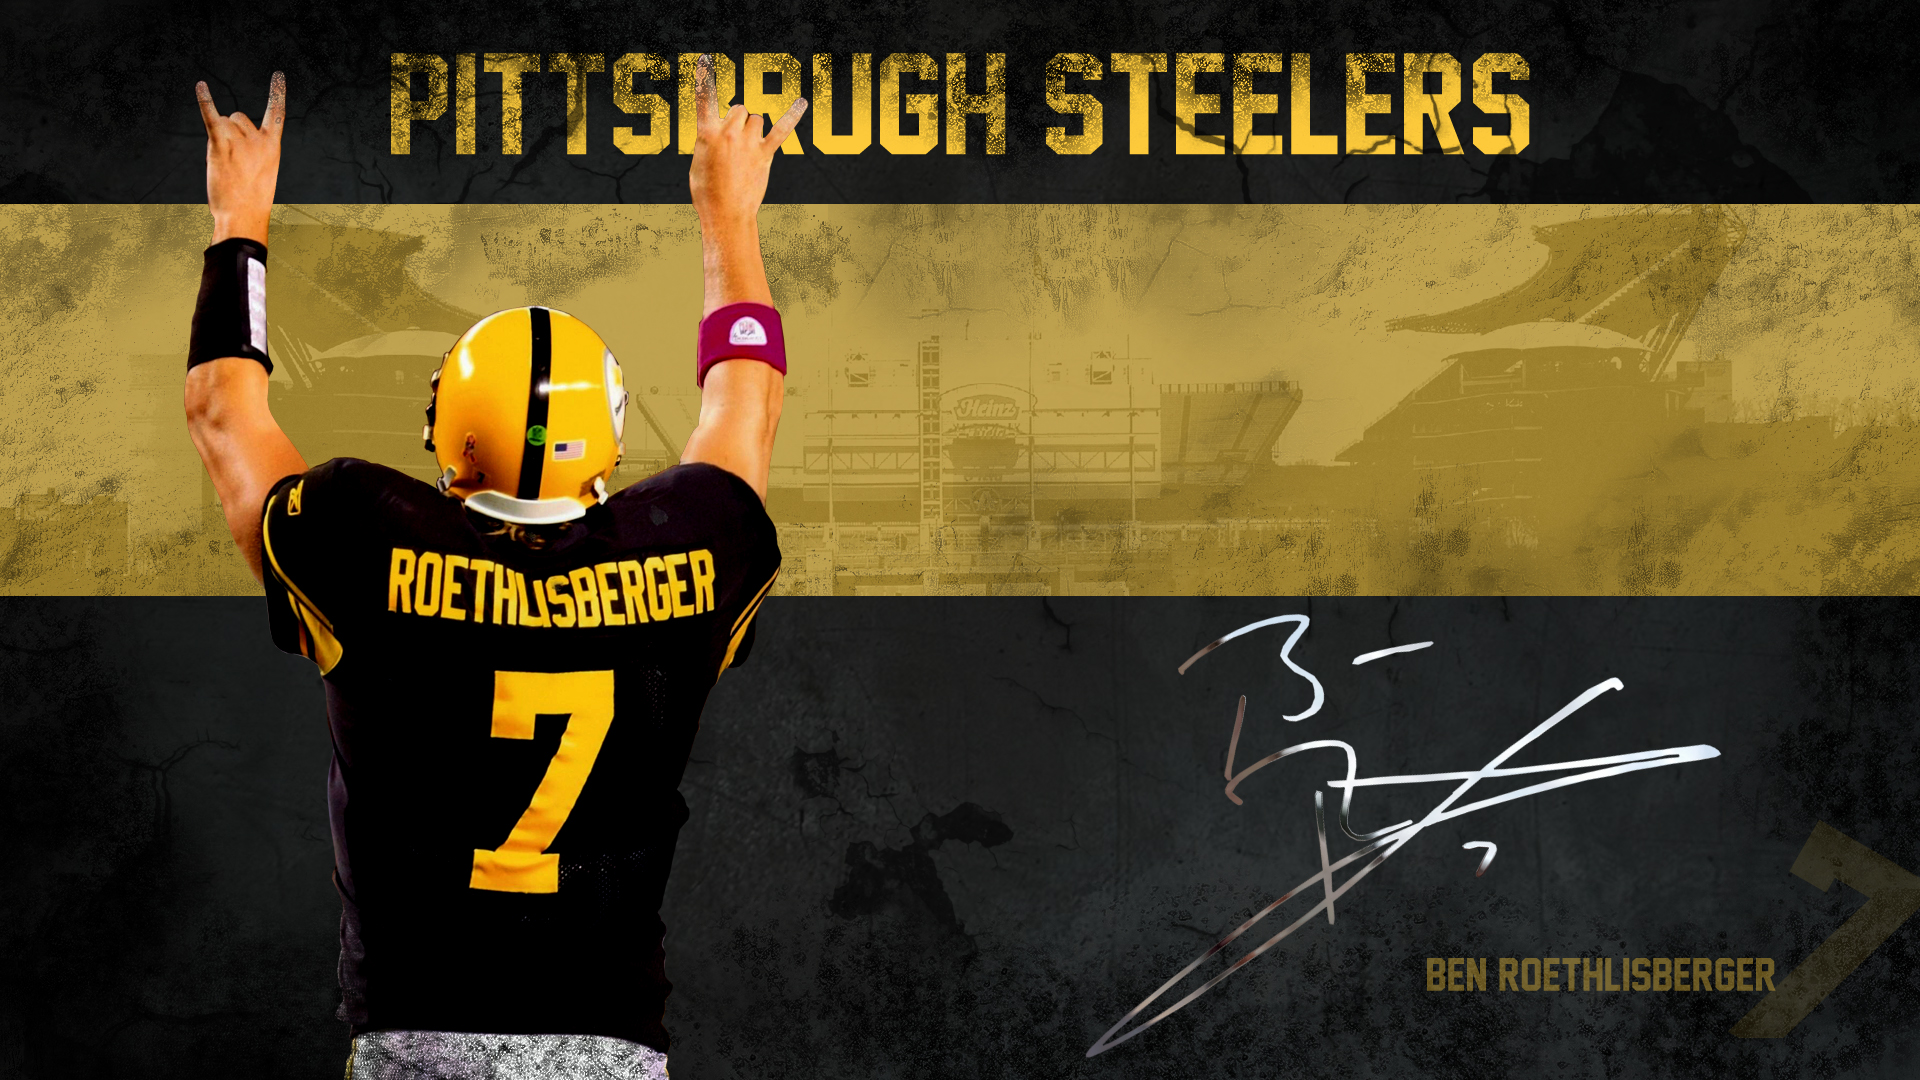 Steelers HD desktop wallpaper Pittsburgh Steelers wallpapers 1920x1080